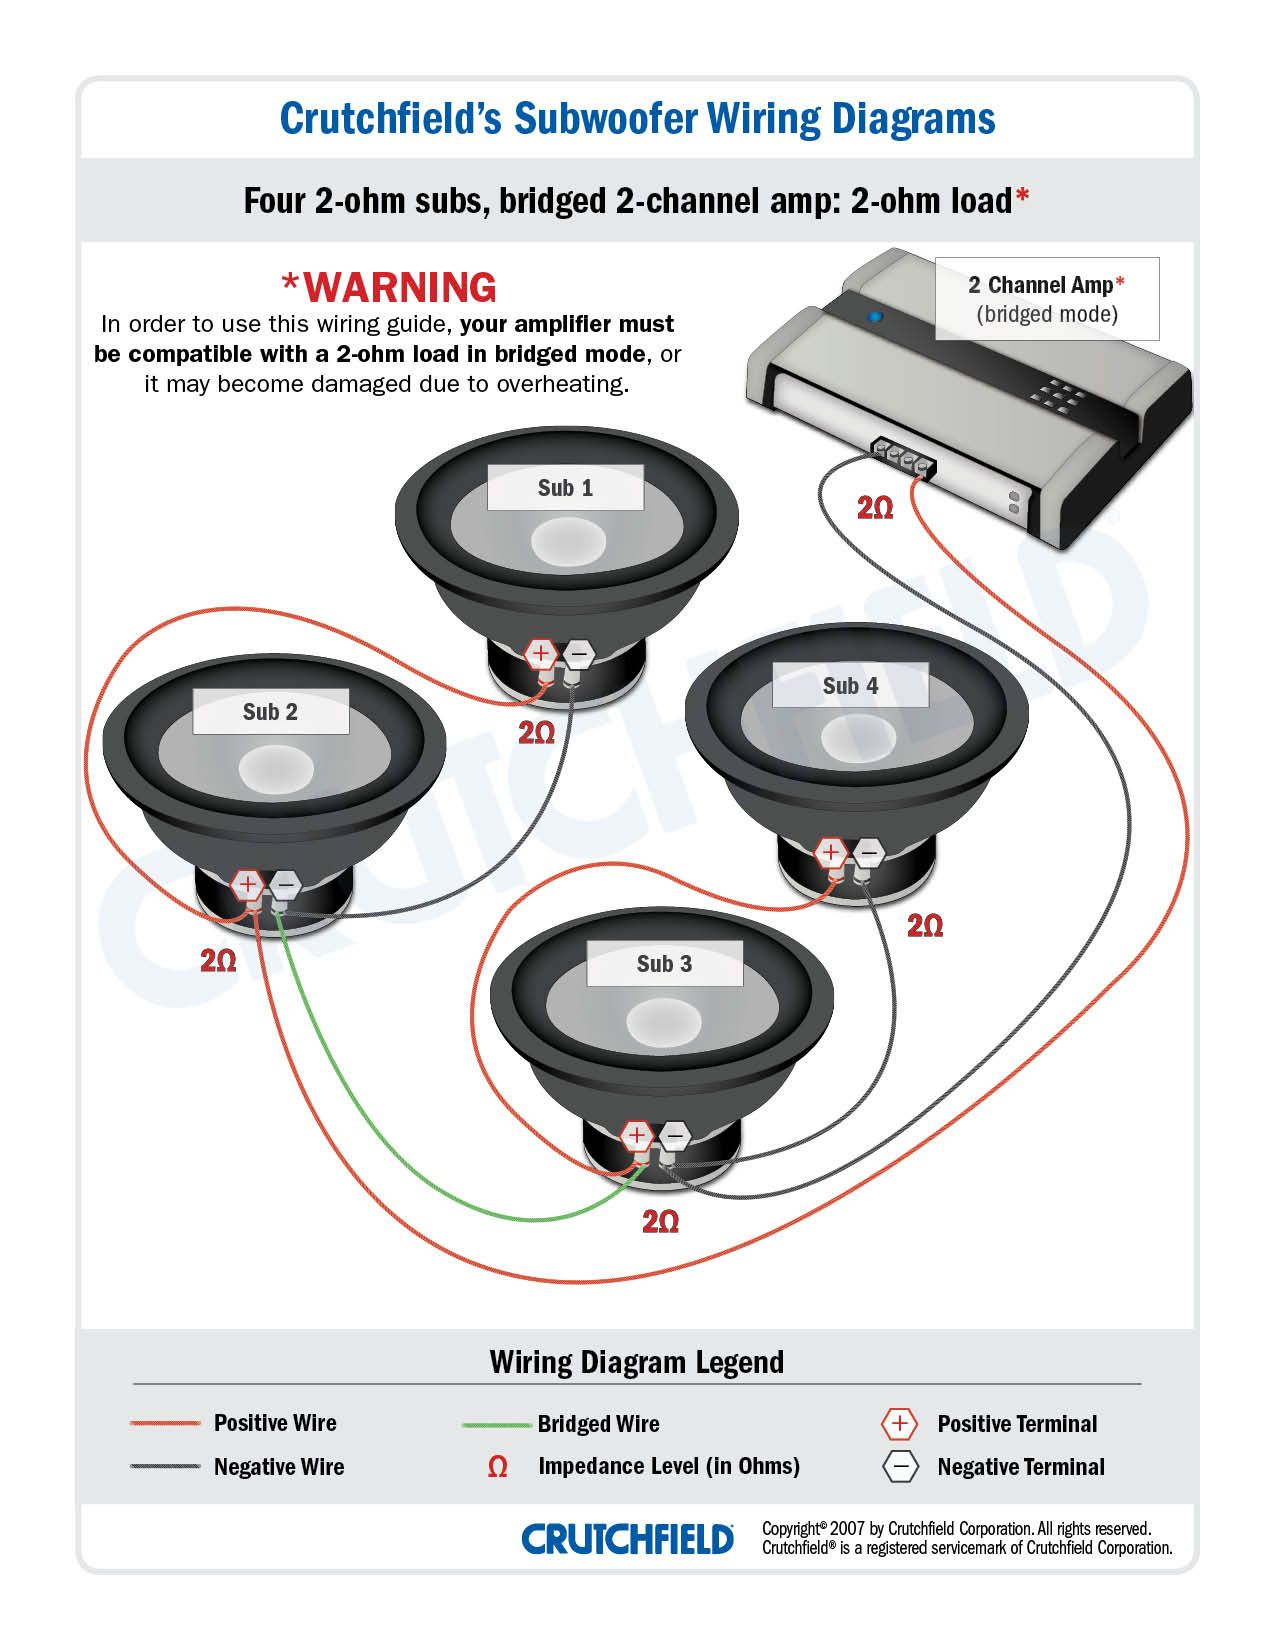 Top 10 Subwoofer Wiring Diagram Free Download 4 Svc 2 Ohm 2 Ch Low Imp Top 10 Subwoofer Wiring Diagram Free Downlo Subwoofer Wiring Subwoofer Car Audio Systems